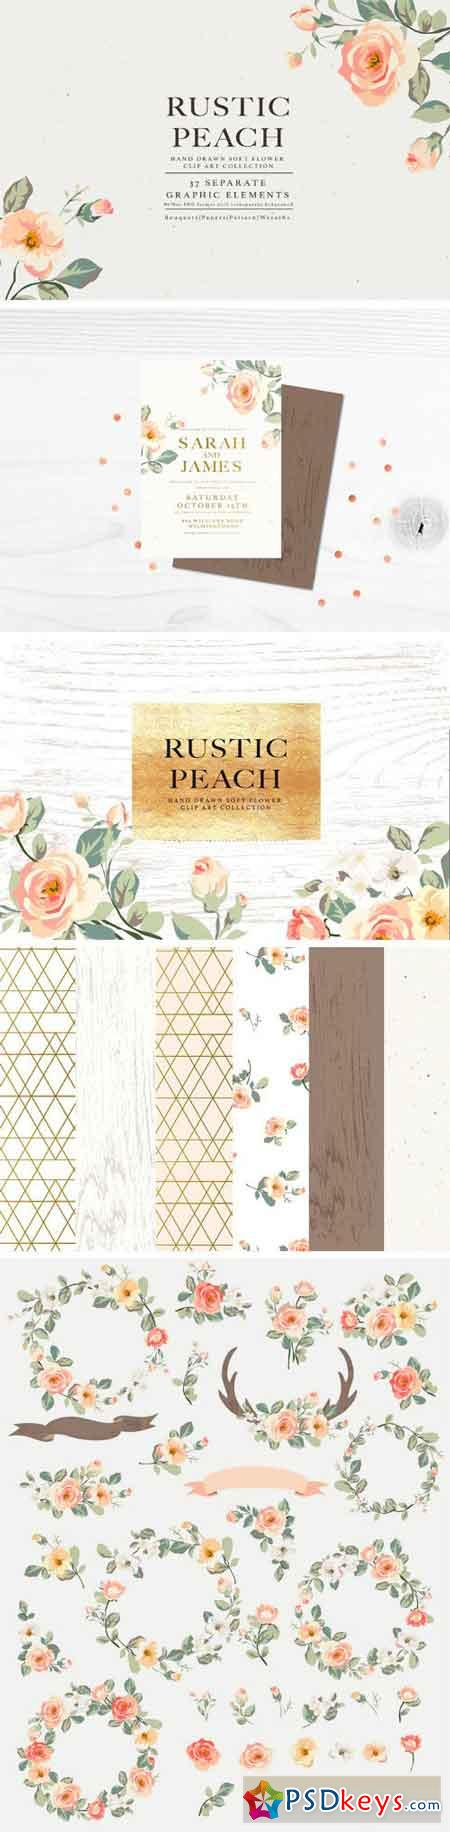 Flower Collection - Rustic Peach